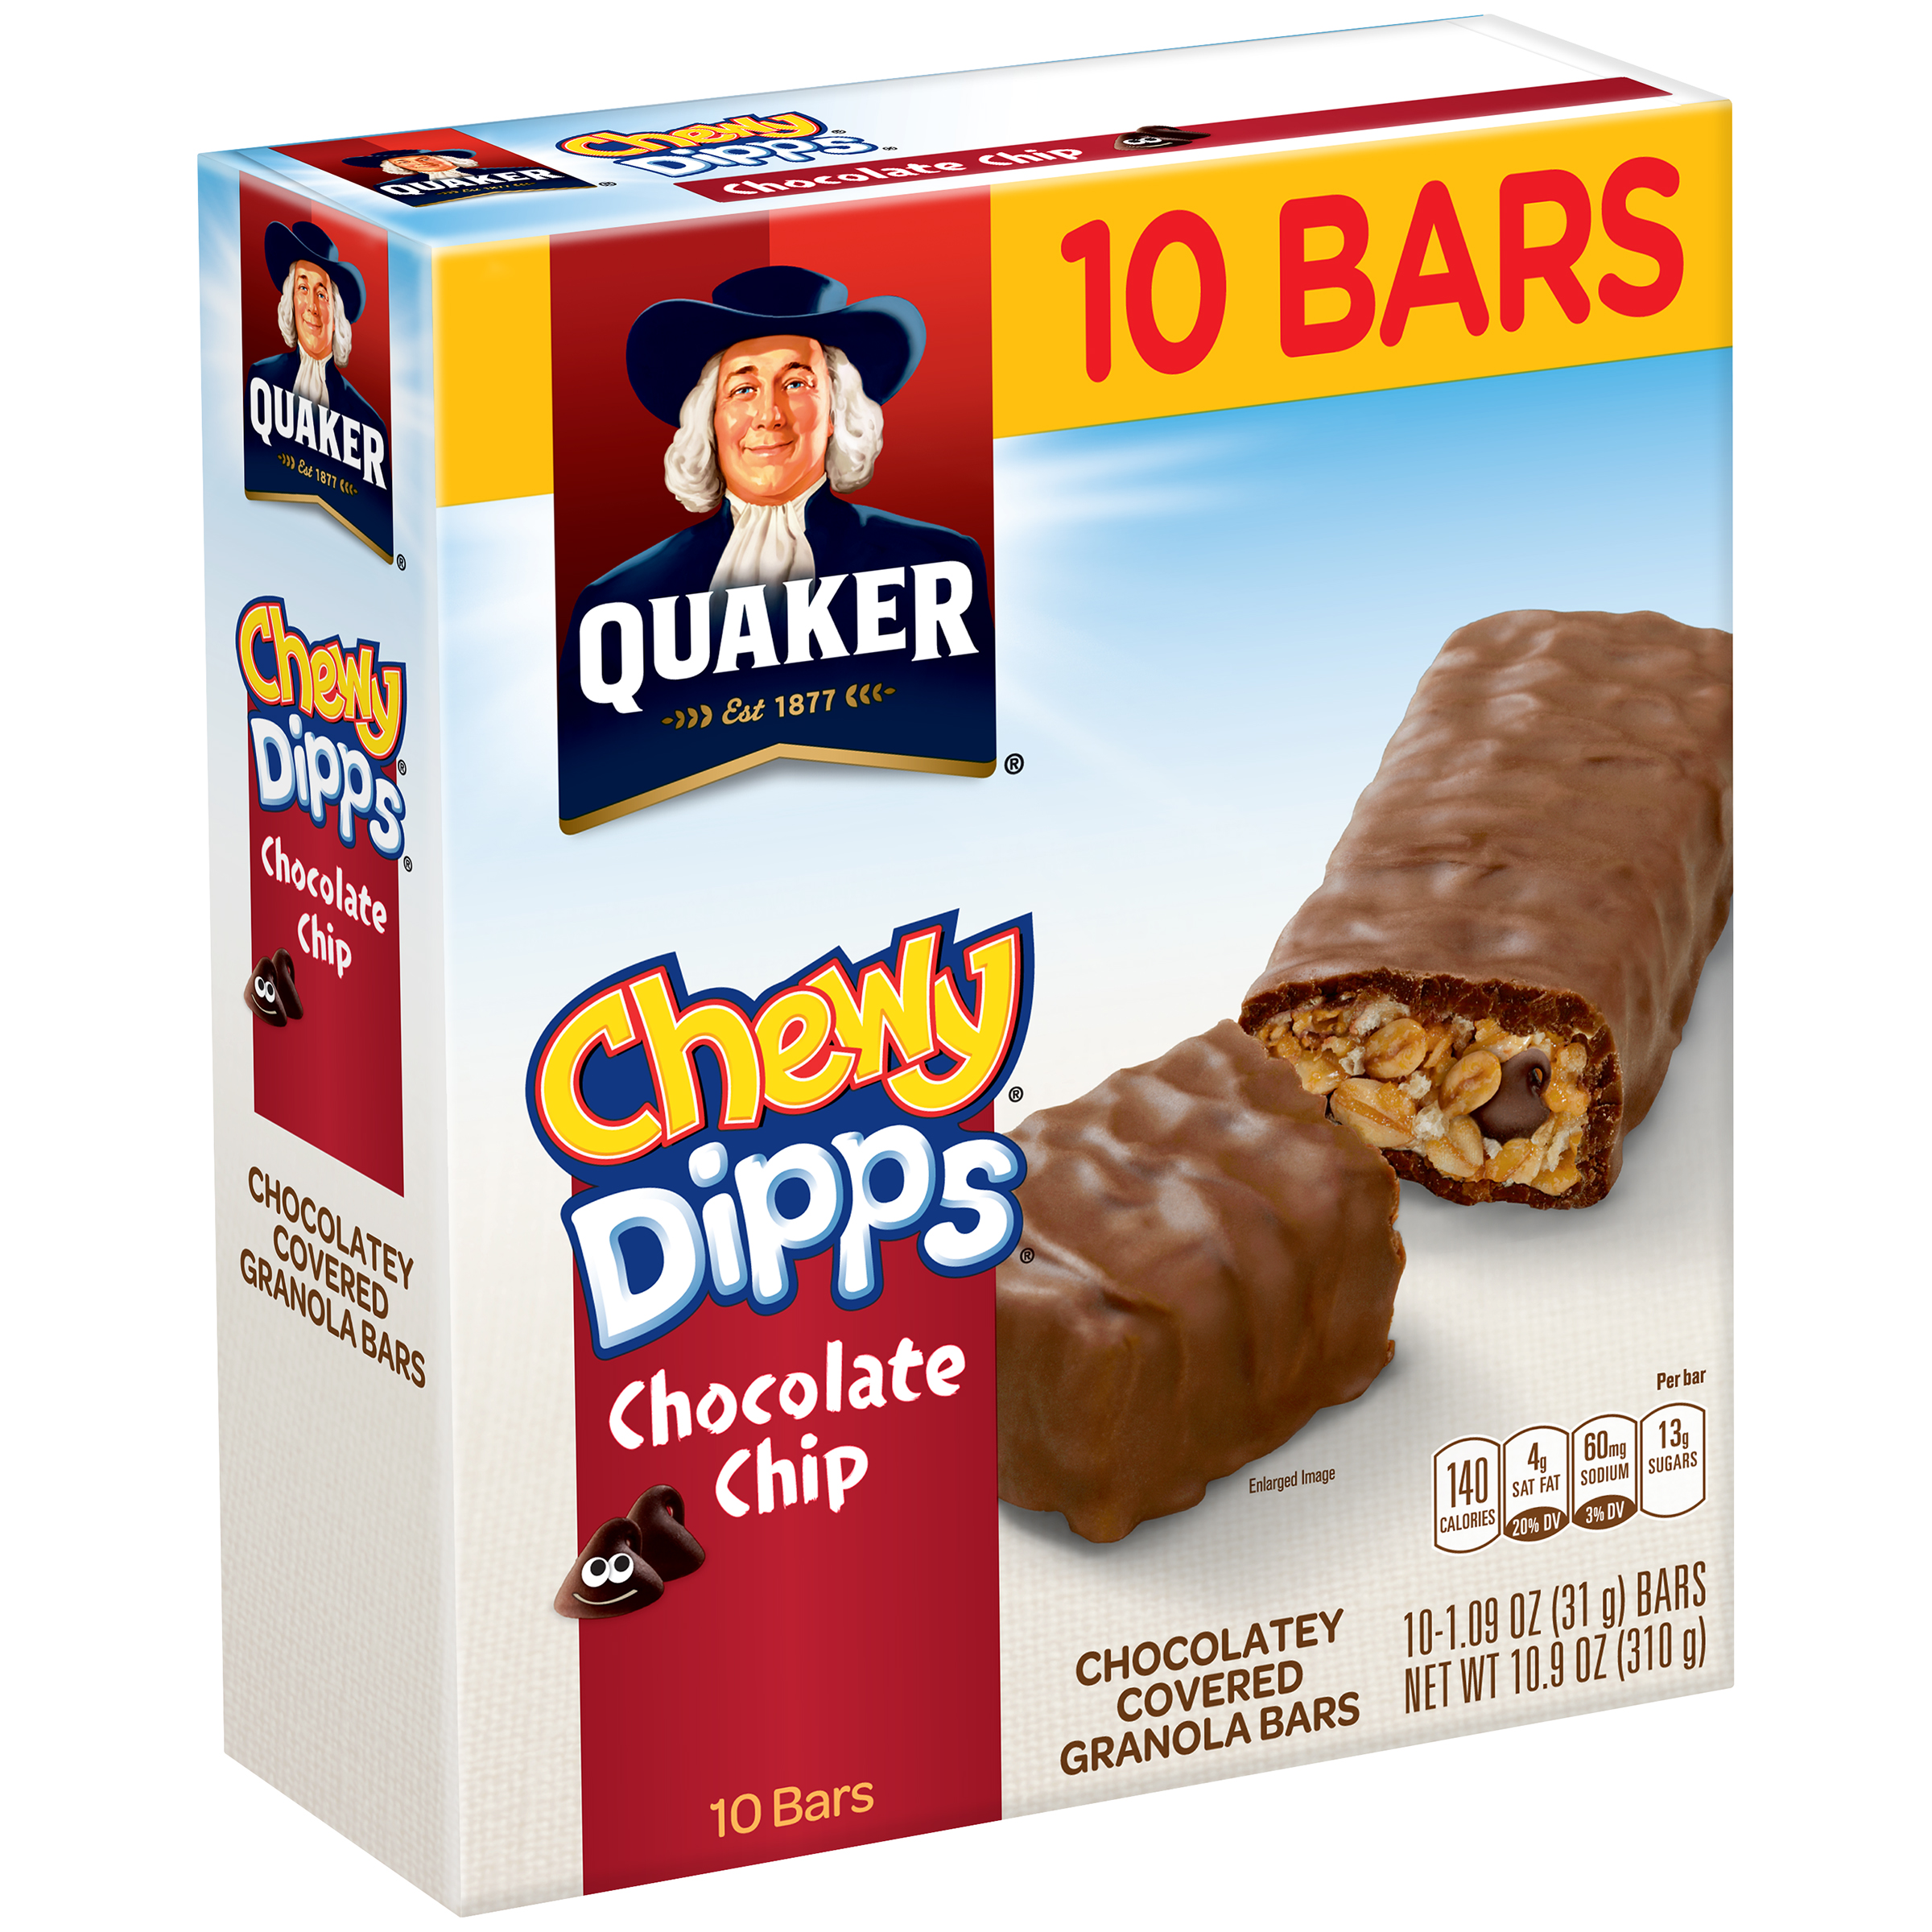 Quaker Chewy Dipps Chocolate Chip Granola Bars, 1.09 oz, 10 count